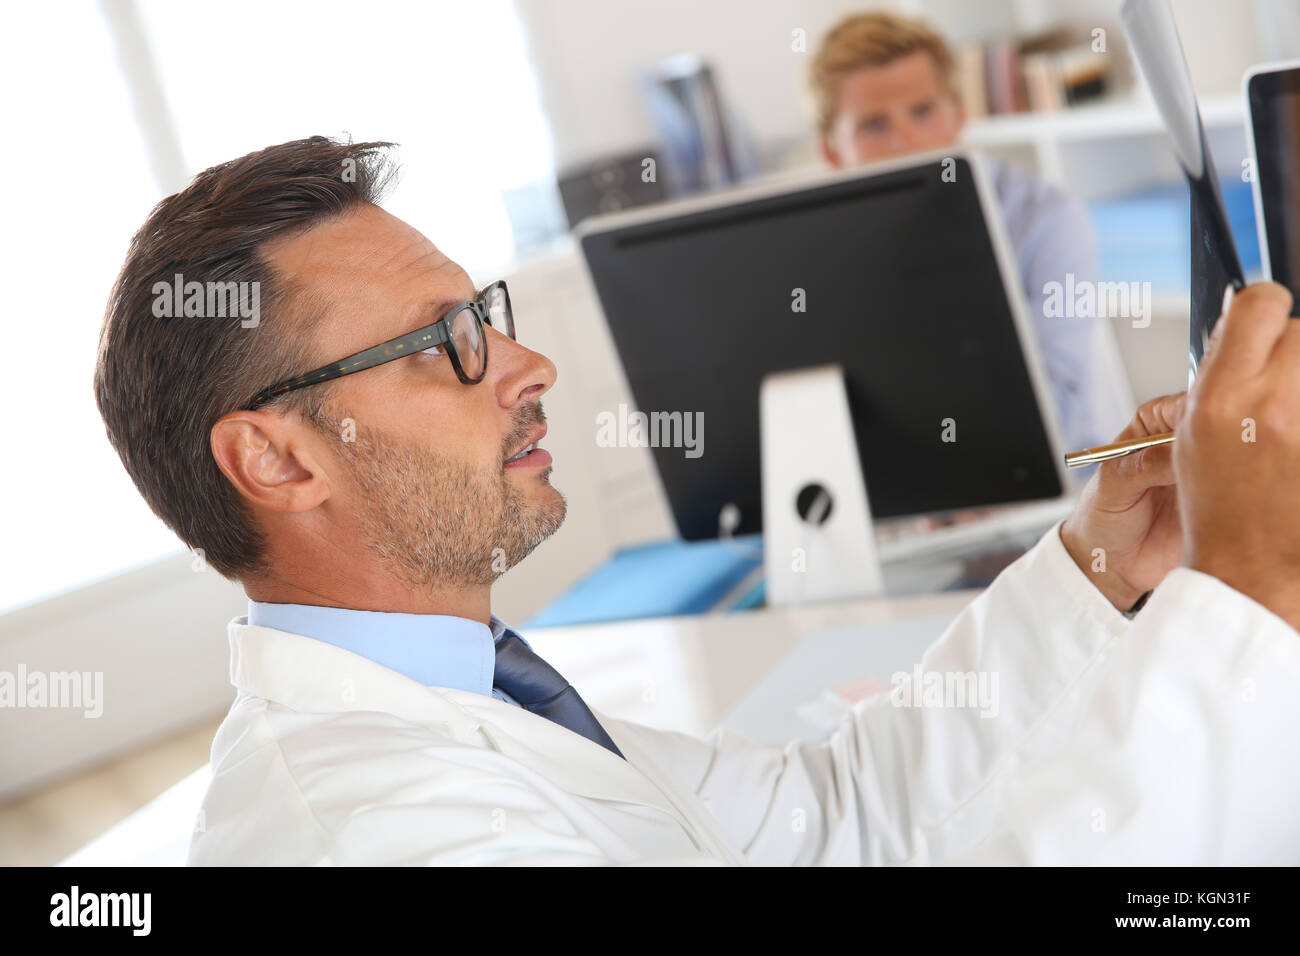 Doctor checking on X-Ray images - Stock Image